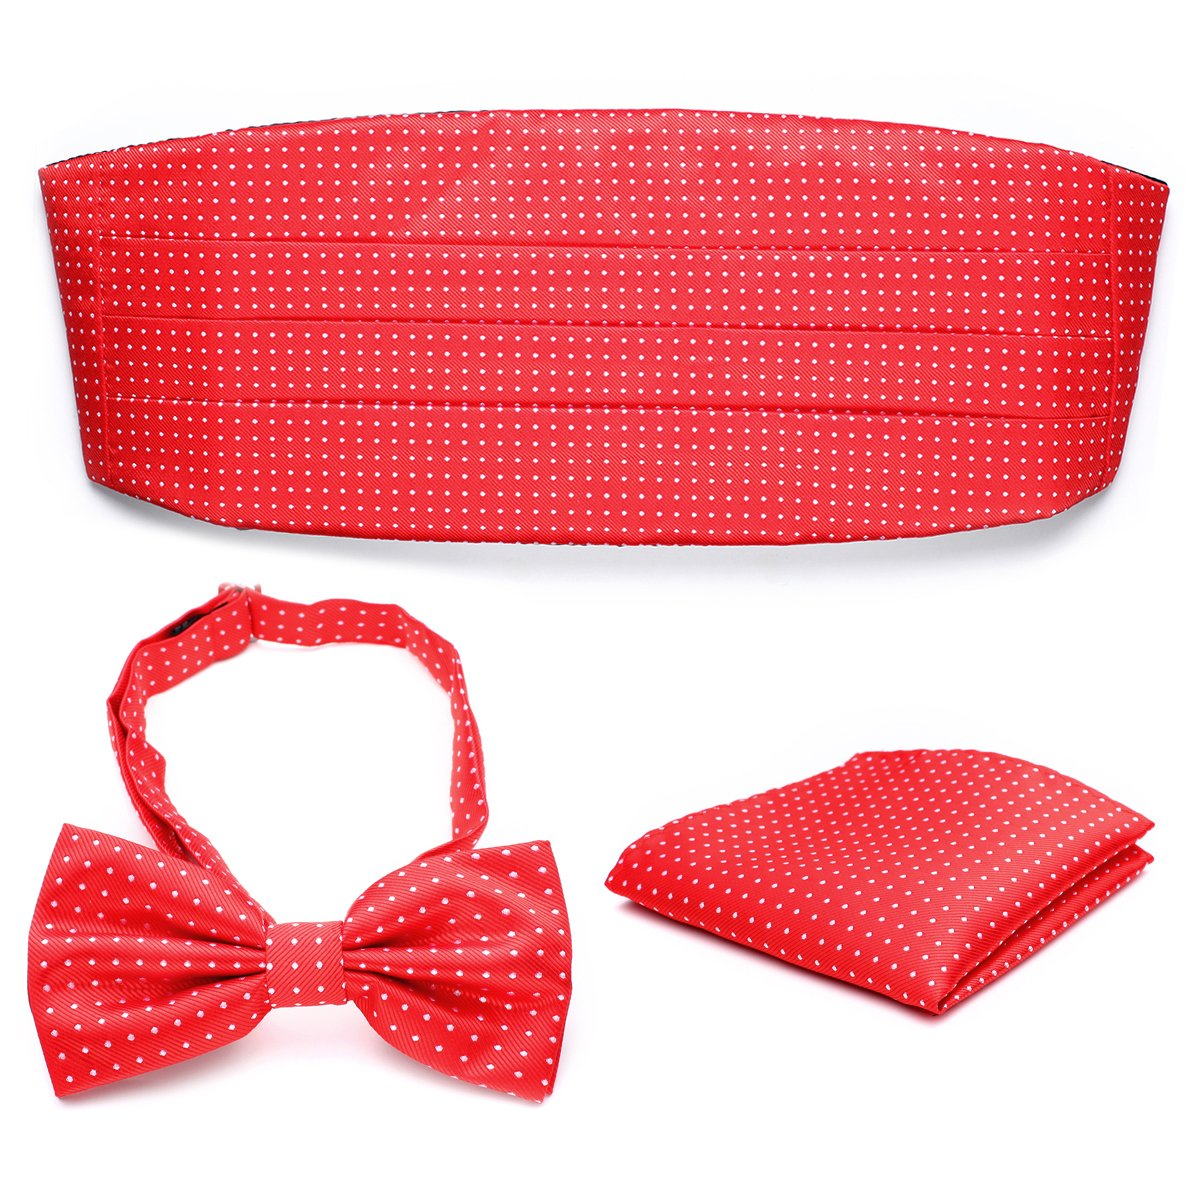 PenSee Mens Polka Dot Exquisite Silk Pre-tied Bow Tie & Hankerchief & Cummerbund Set-Various Colors PSK04-034